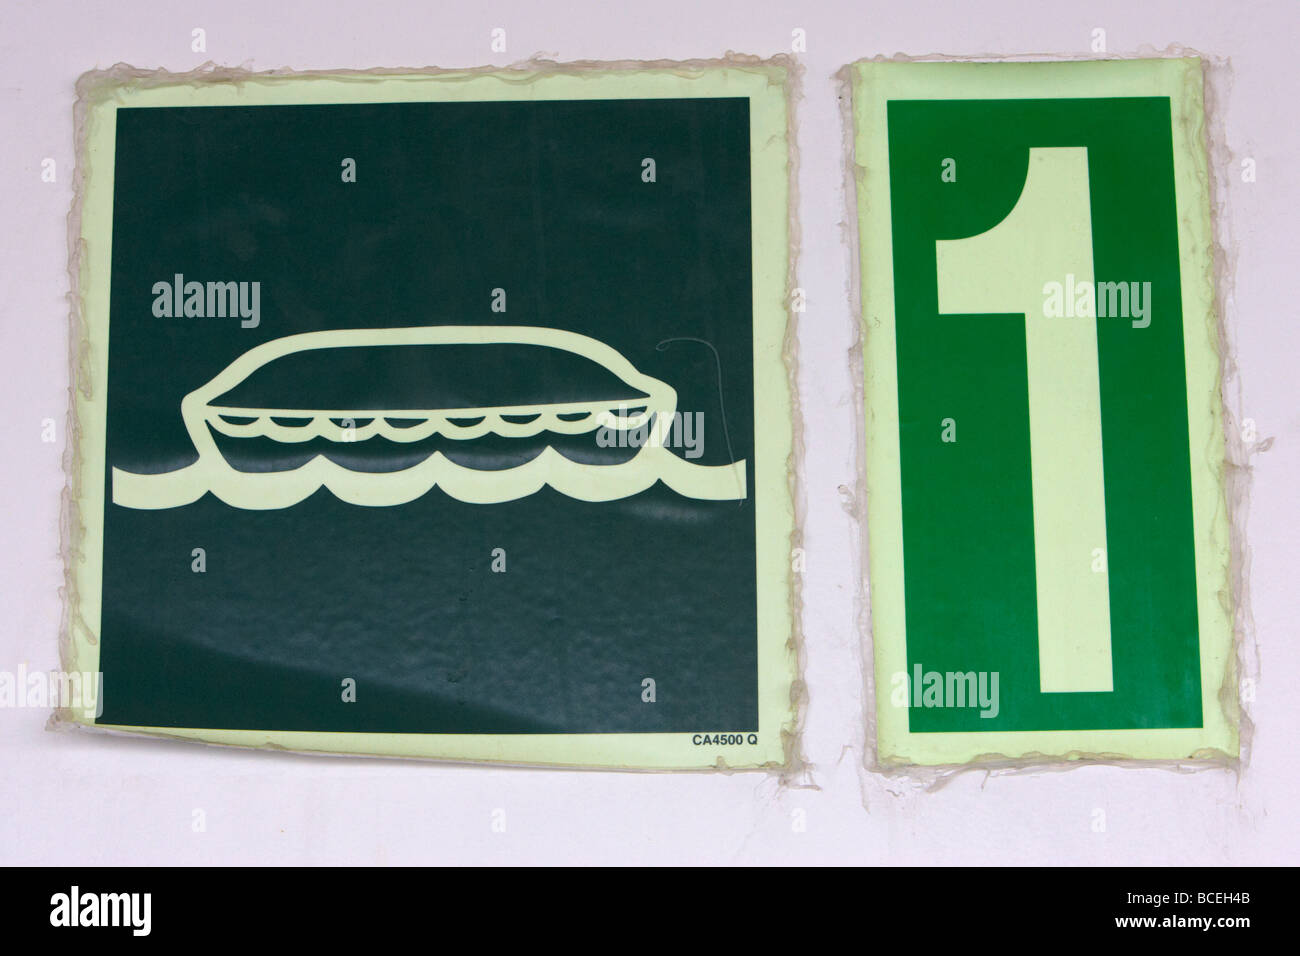 luminous lifeboat station number 1 sign on board a car ferry in the uk - Stock Image